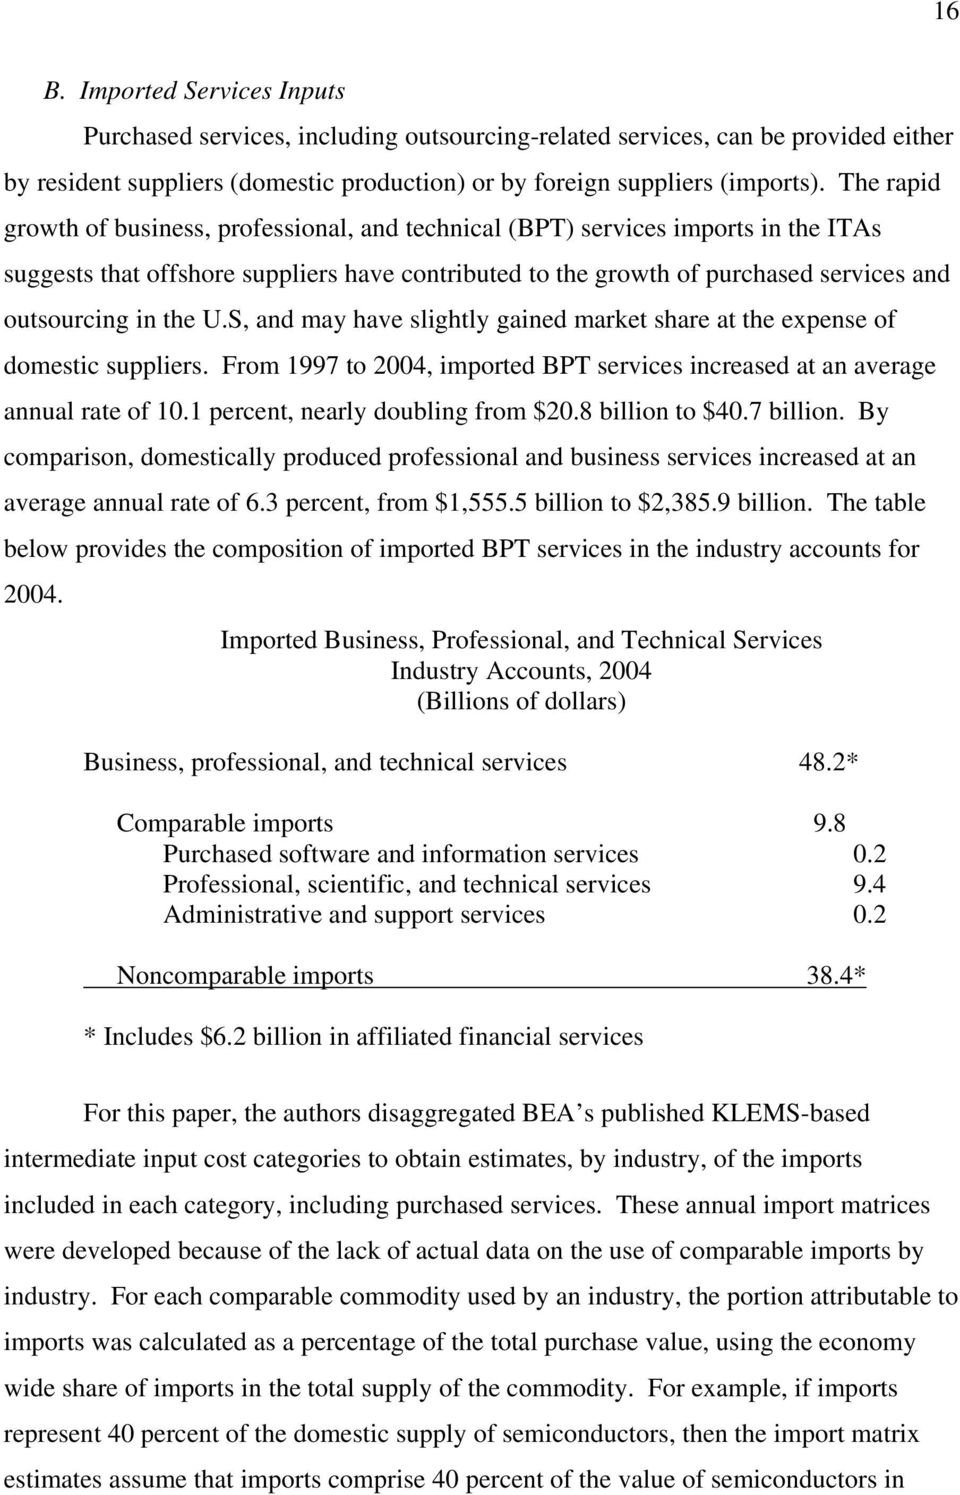 the U.S, and may have slightly gained market share at the expense of domestic suppliers. From 1997 to 2004, imported BPT services increased at an average annual rate of 10.